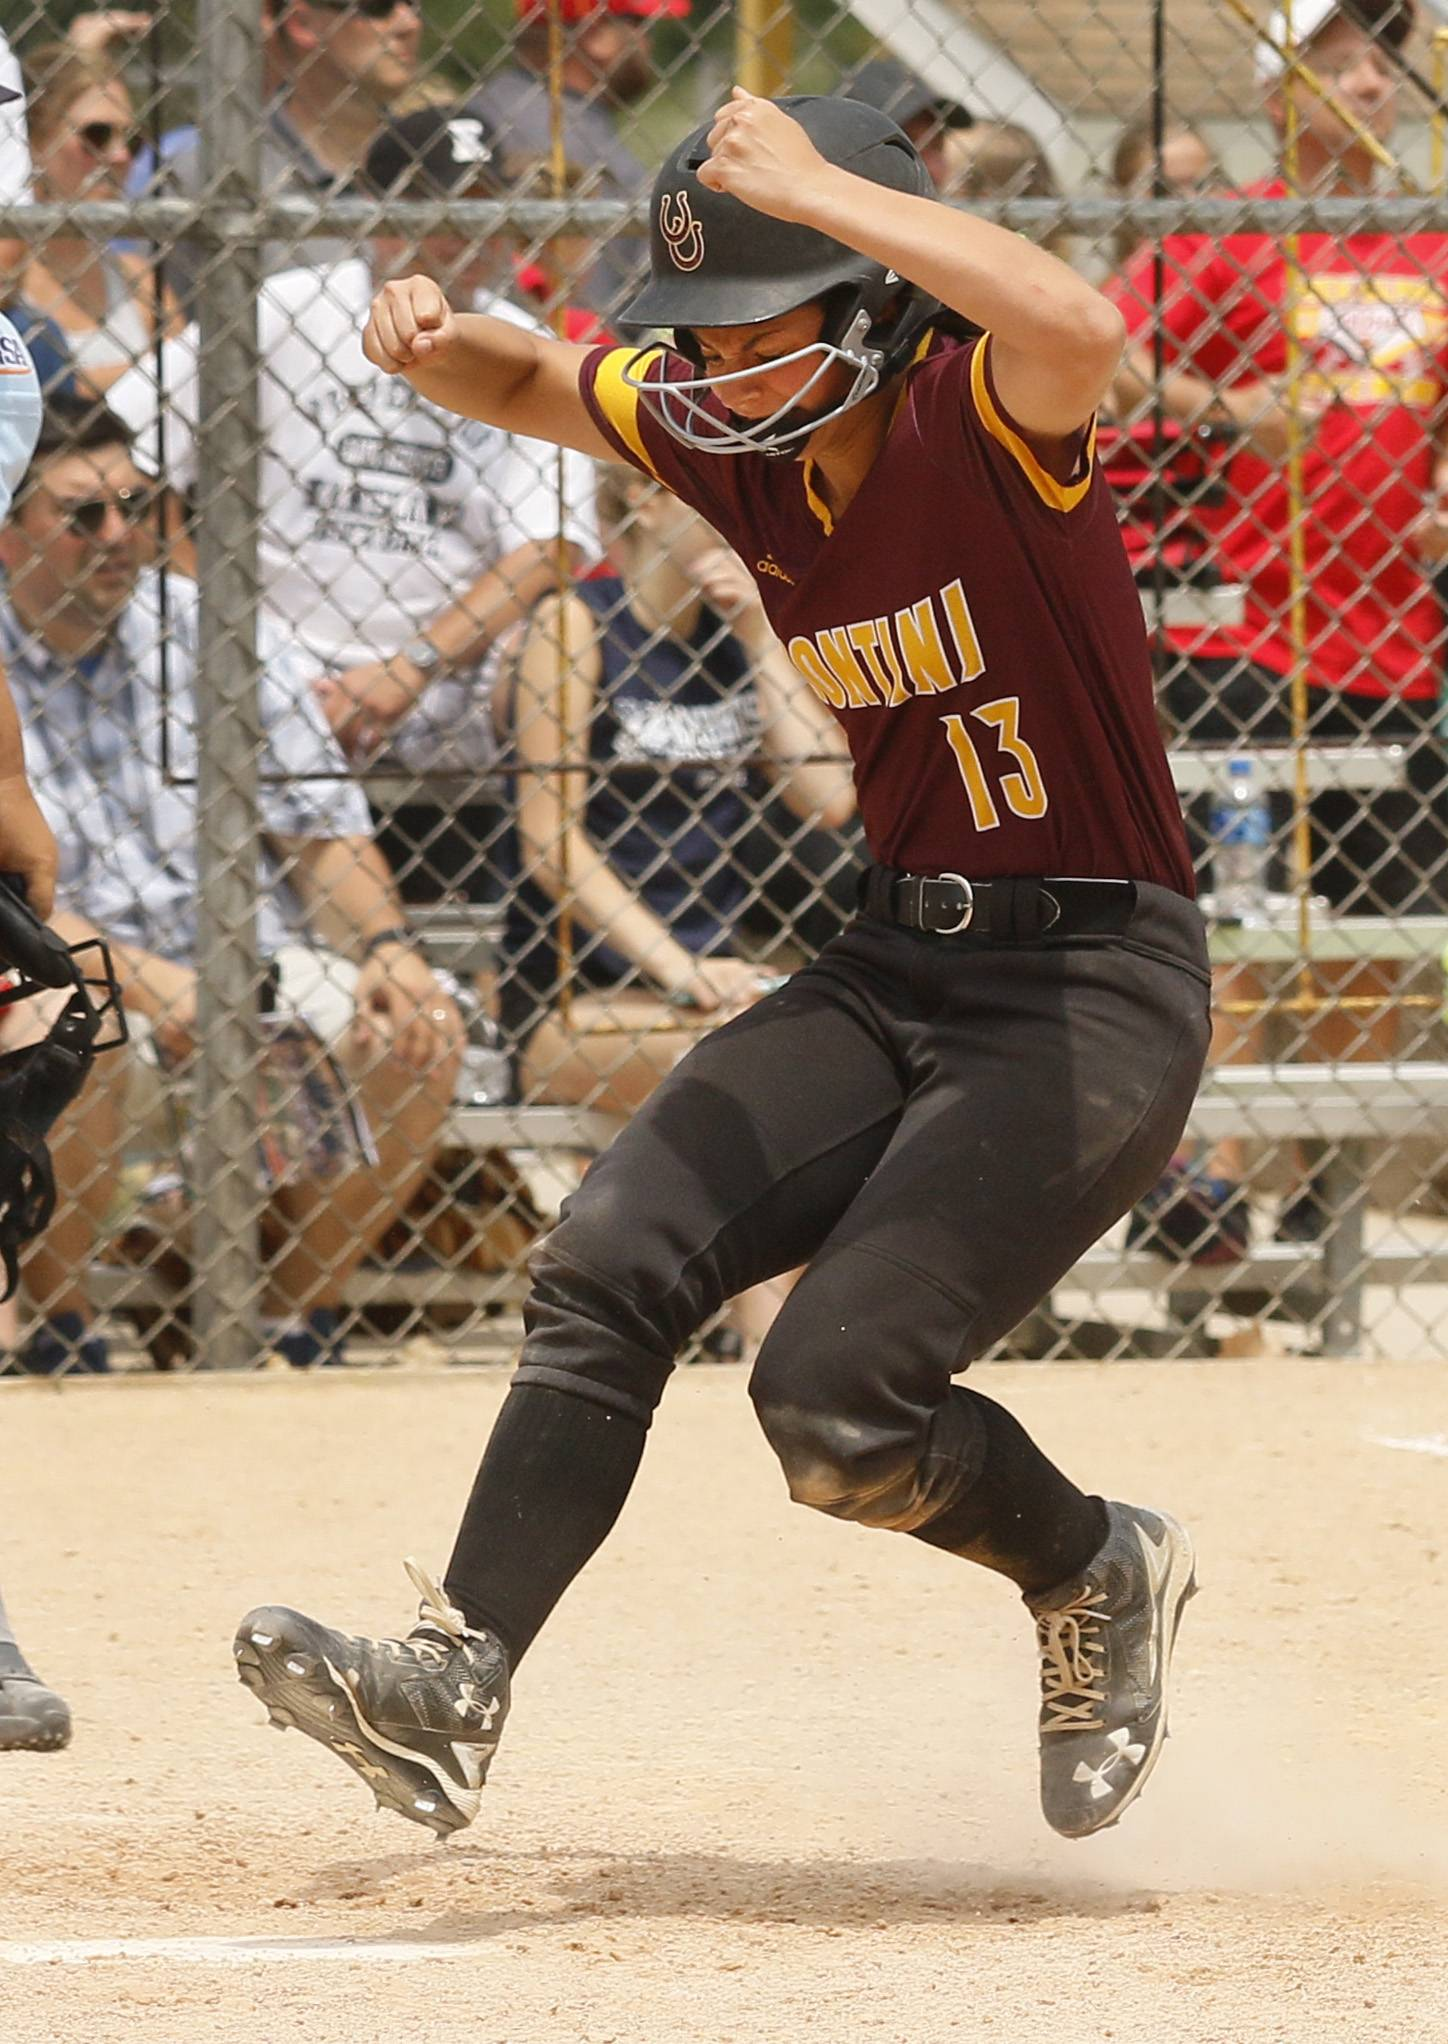 Montini Catholic's Madalyn Rawski (13) celebrates scoring a run during the Bronco's epic 15-8 seventh inning comeback against Kaneland to win the IHSA Class 3A state softball championship.